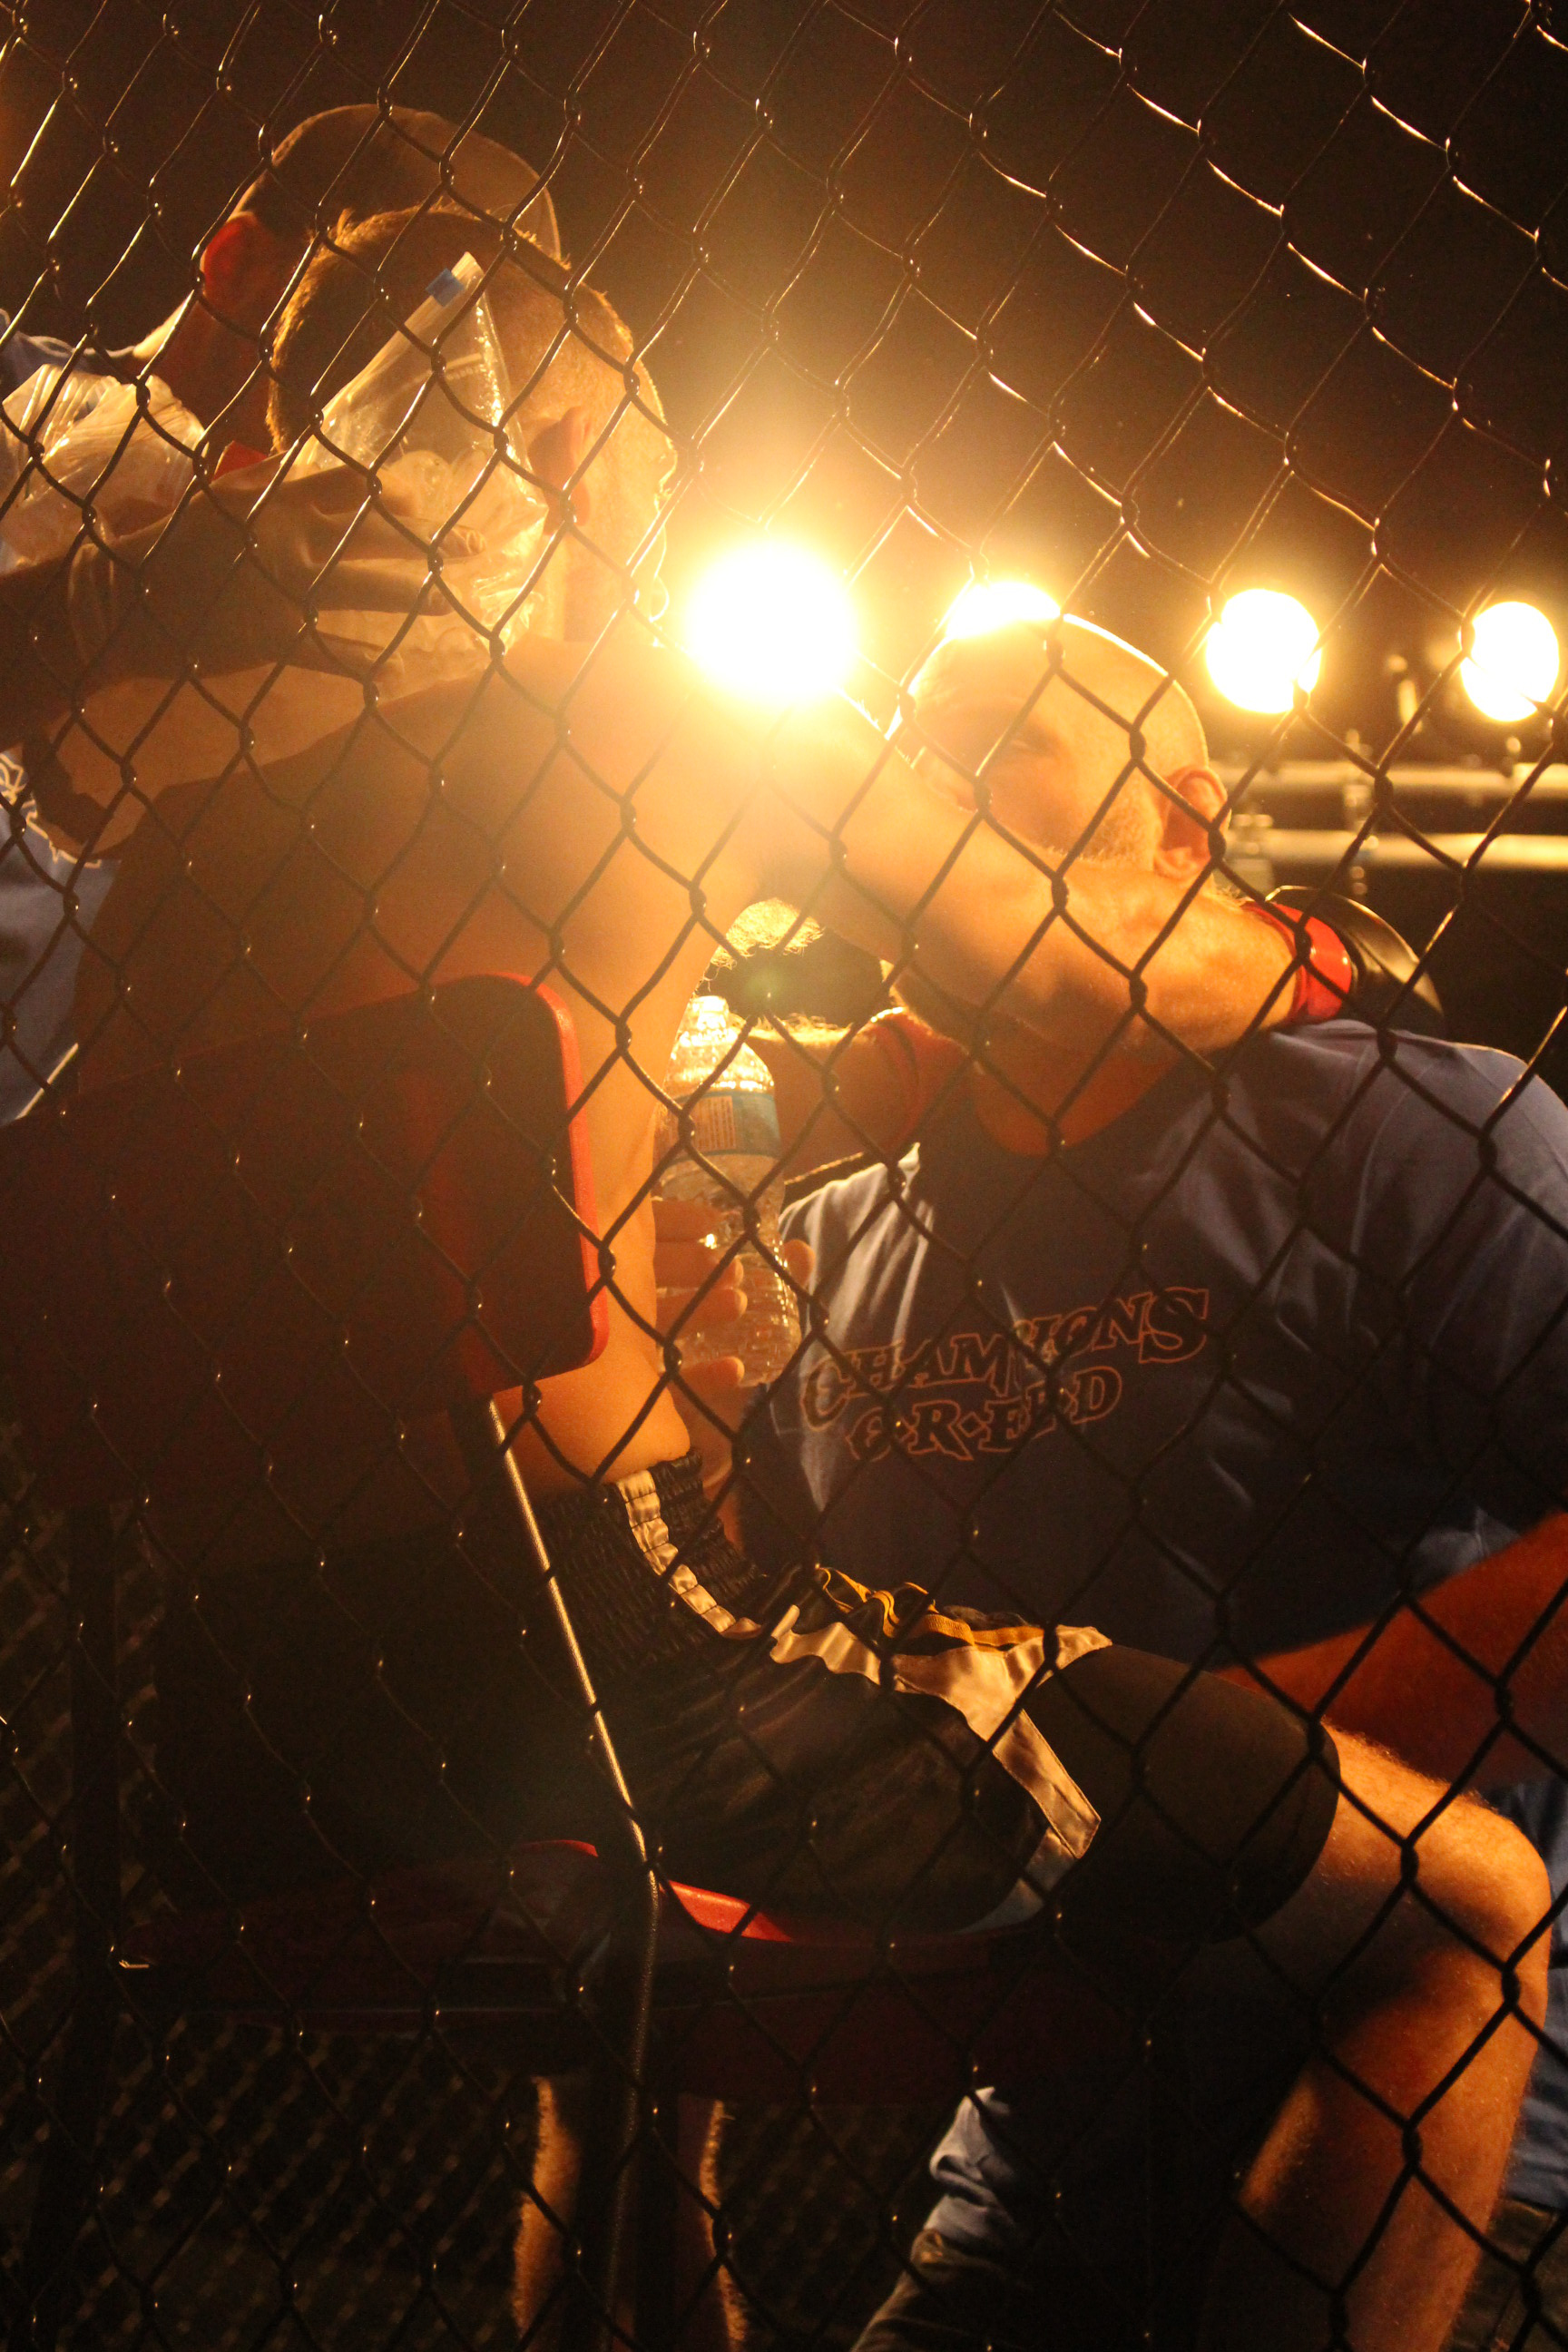 Jesse Richardson has an inbetween rounds chat with his coach Brian Bird at Rumble in The Cage at Servus Sports Centre in Lethbridge on September 30, 2017.